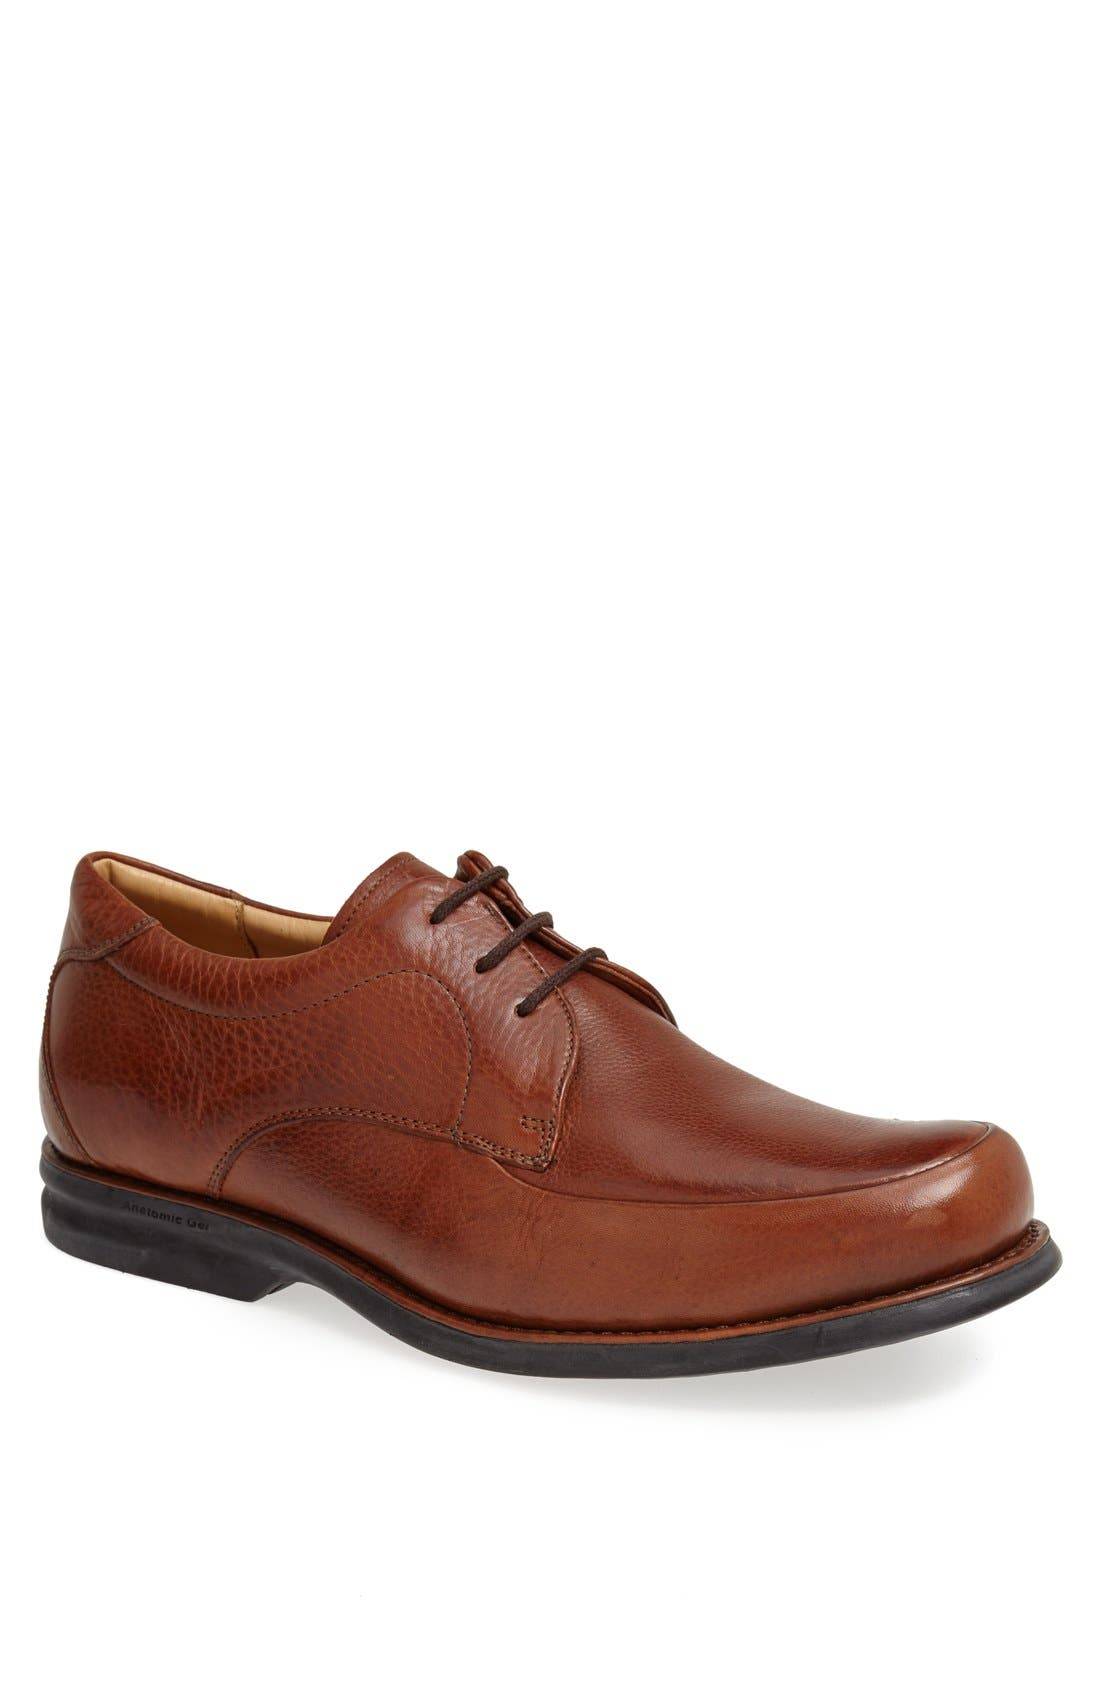 Anatomic & Co 'New Recife' Moc Toe Derby (Men)